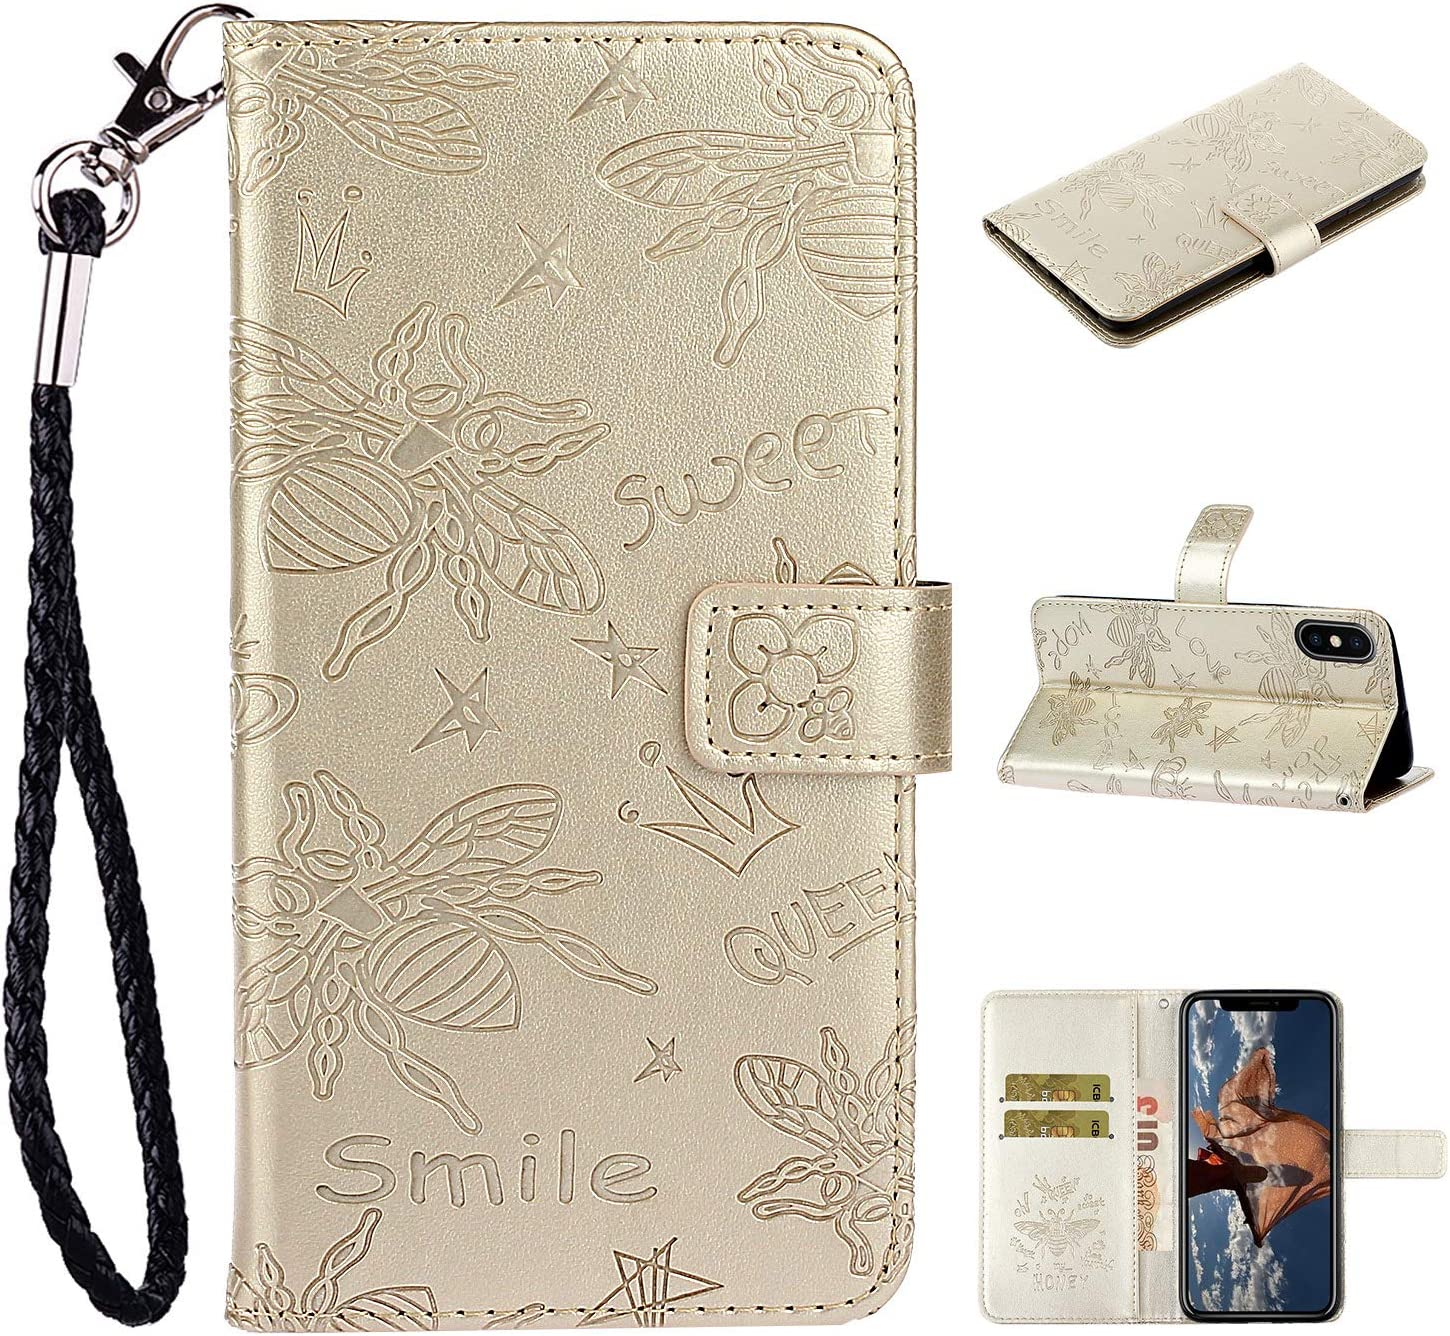 Amocase Strap Wallet Popular popular Leather Case Latest item with for 1 Stylus 2 in iPhone